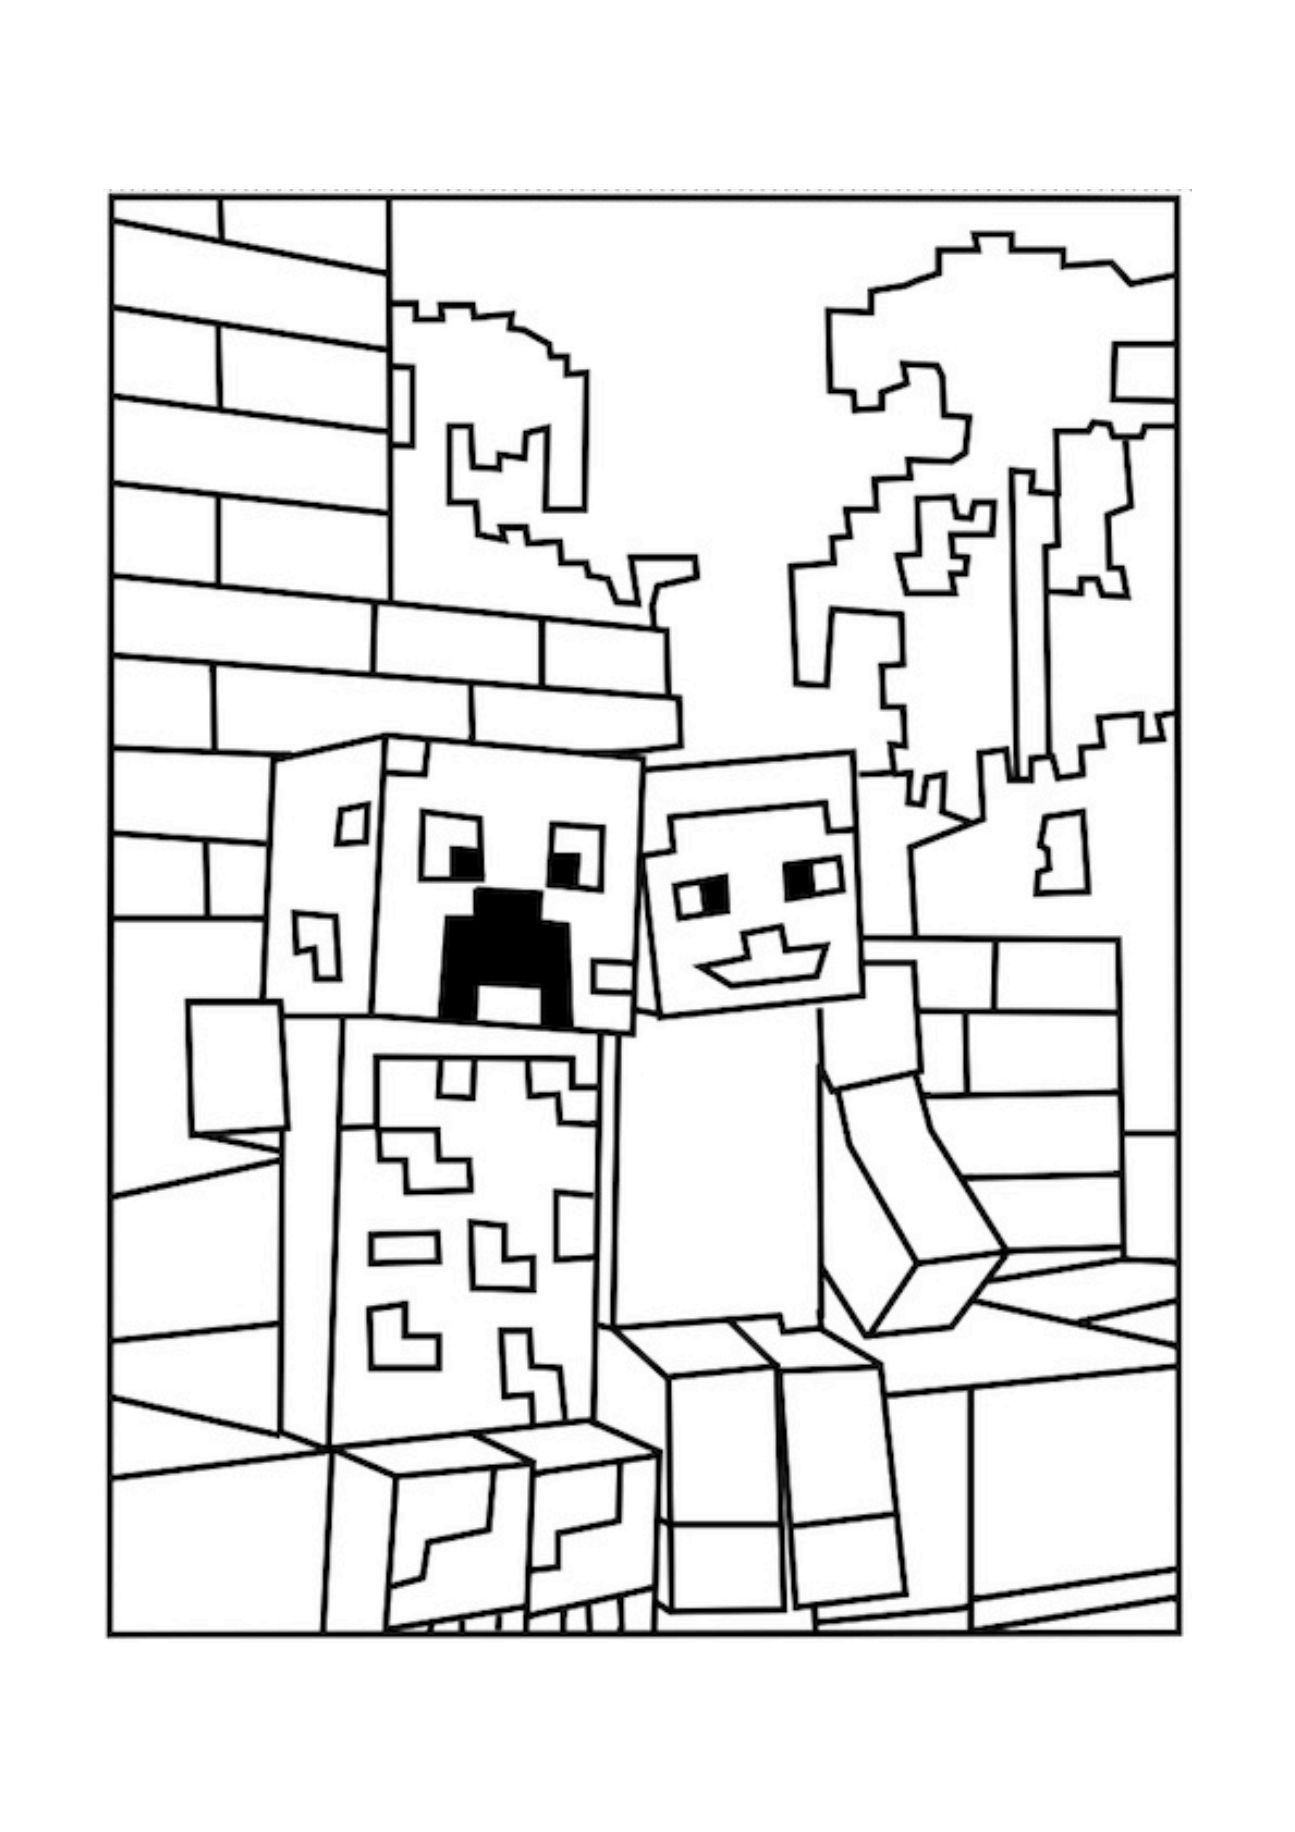 Minecraft Friends Coloring Page In 2020 Minecraft Coloring Pages Minecraft Printables Free Printable Coloring Pages